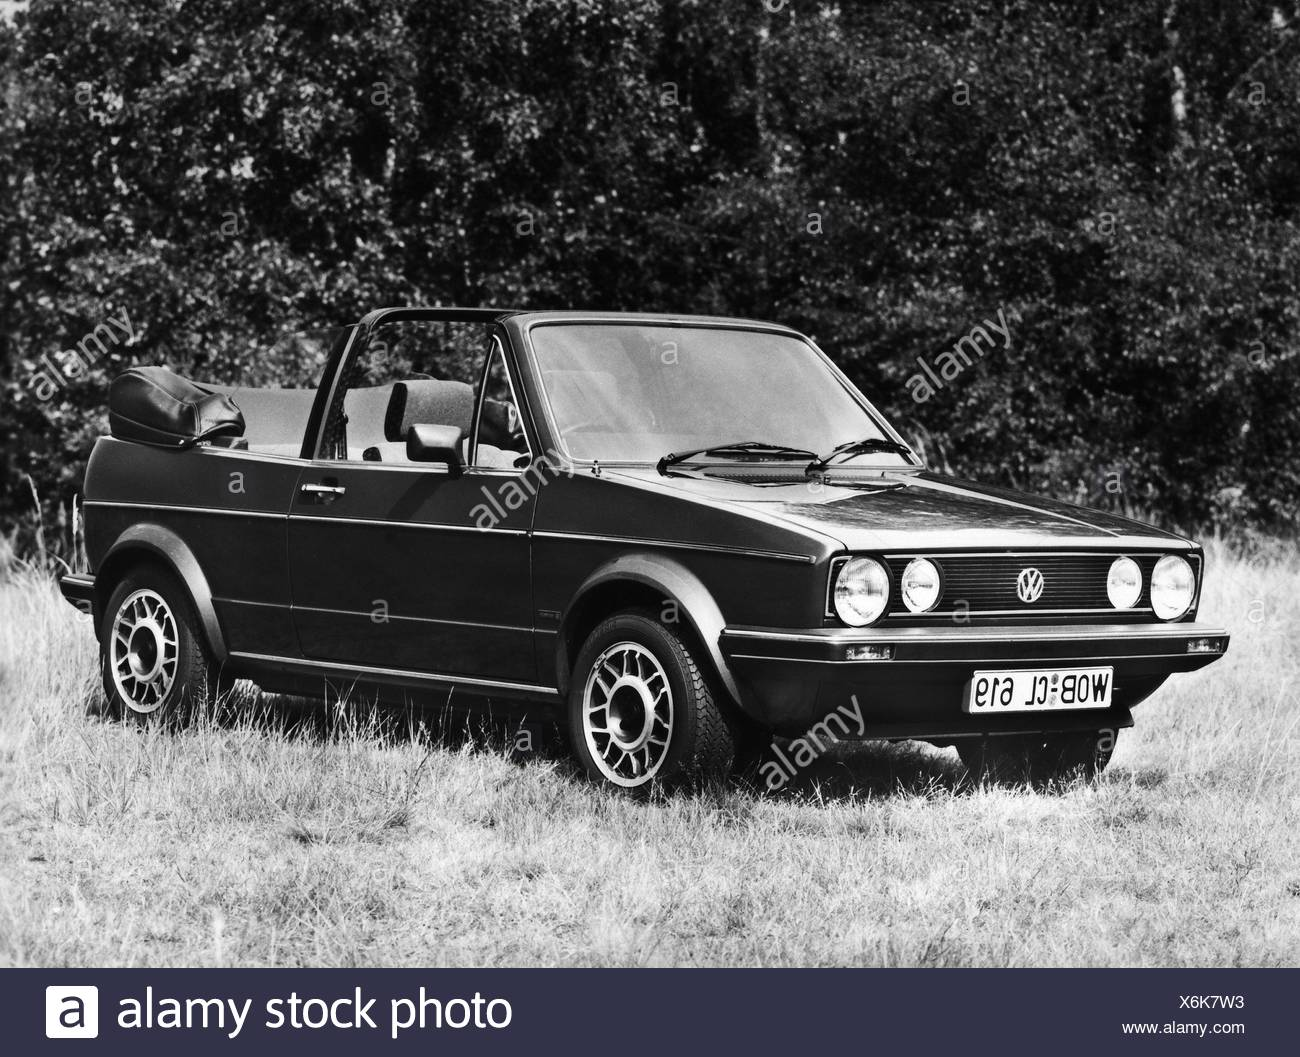 transport / transportation, car, vehicle variants, Volkswagen, VW Golf Mk2 convertible, 1980s, Additional-Rights-Clearences-NA Stock Photo